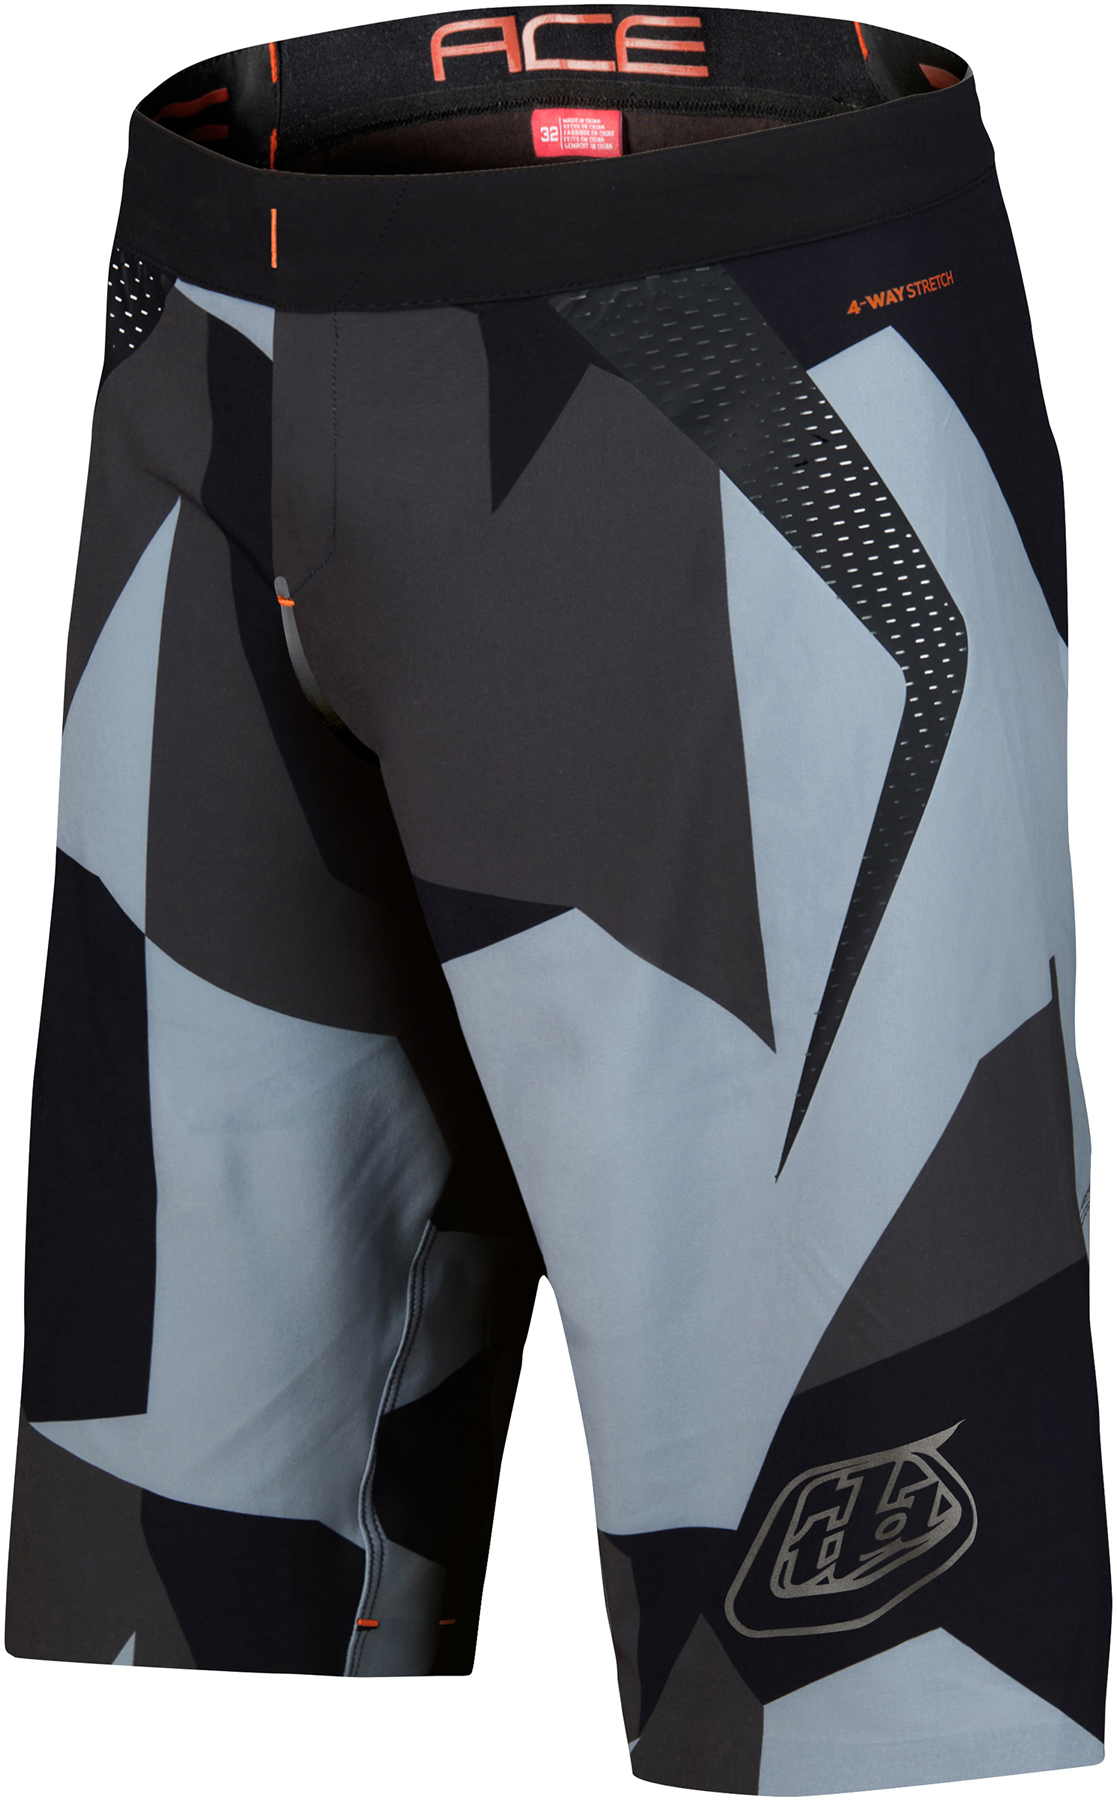 Troy Lee Designs Ace 2.0 MTB Shorts with Bib Shorts | Trousers